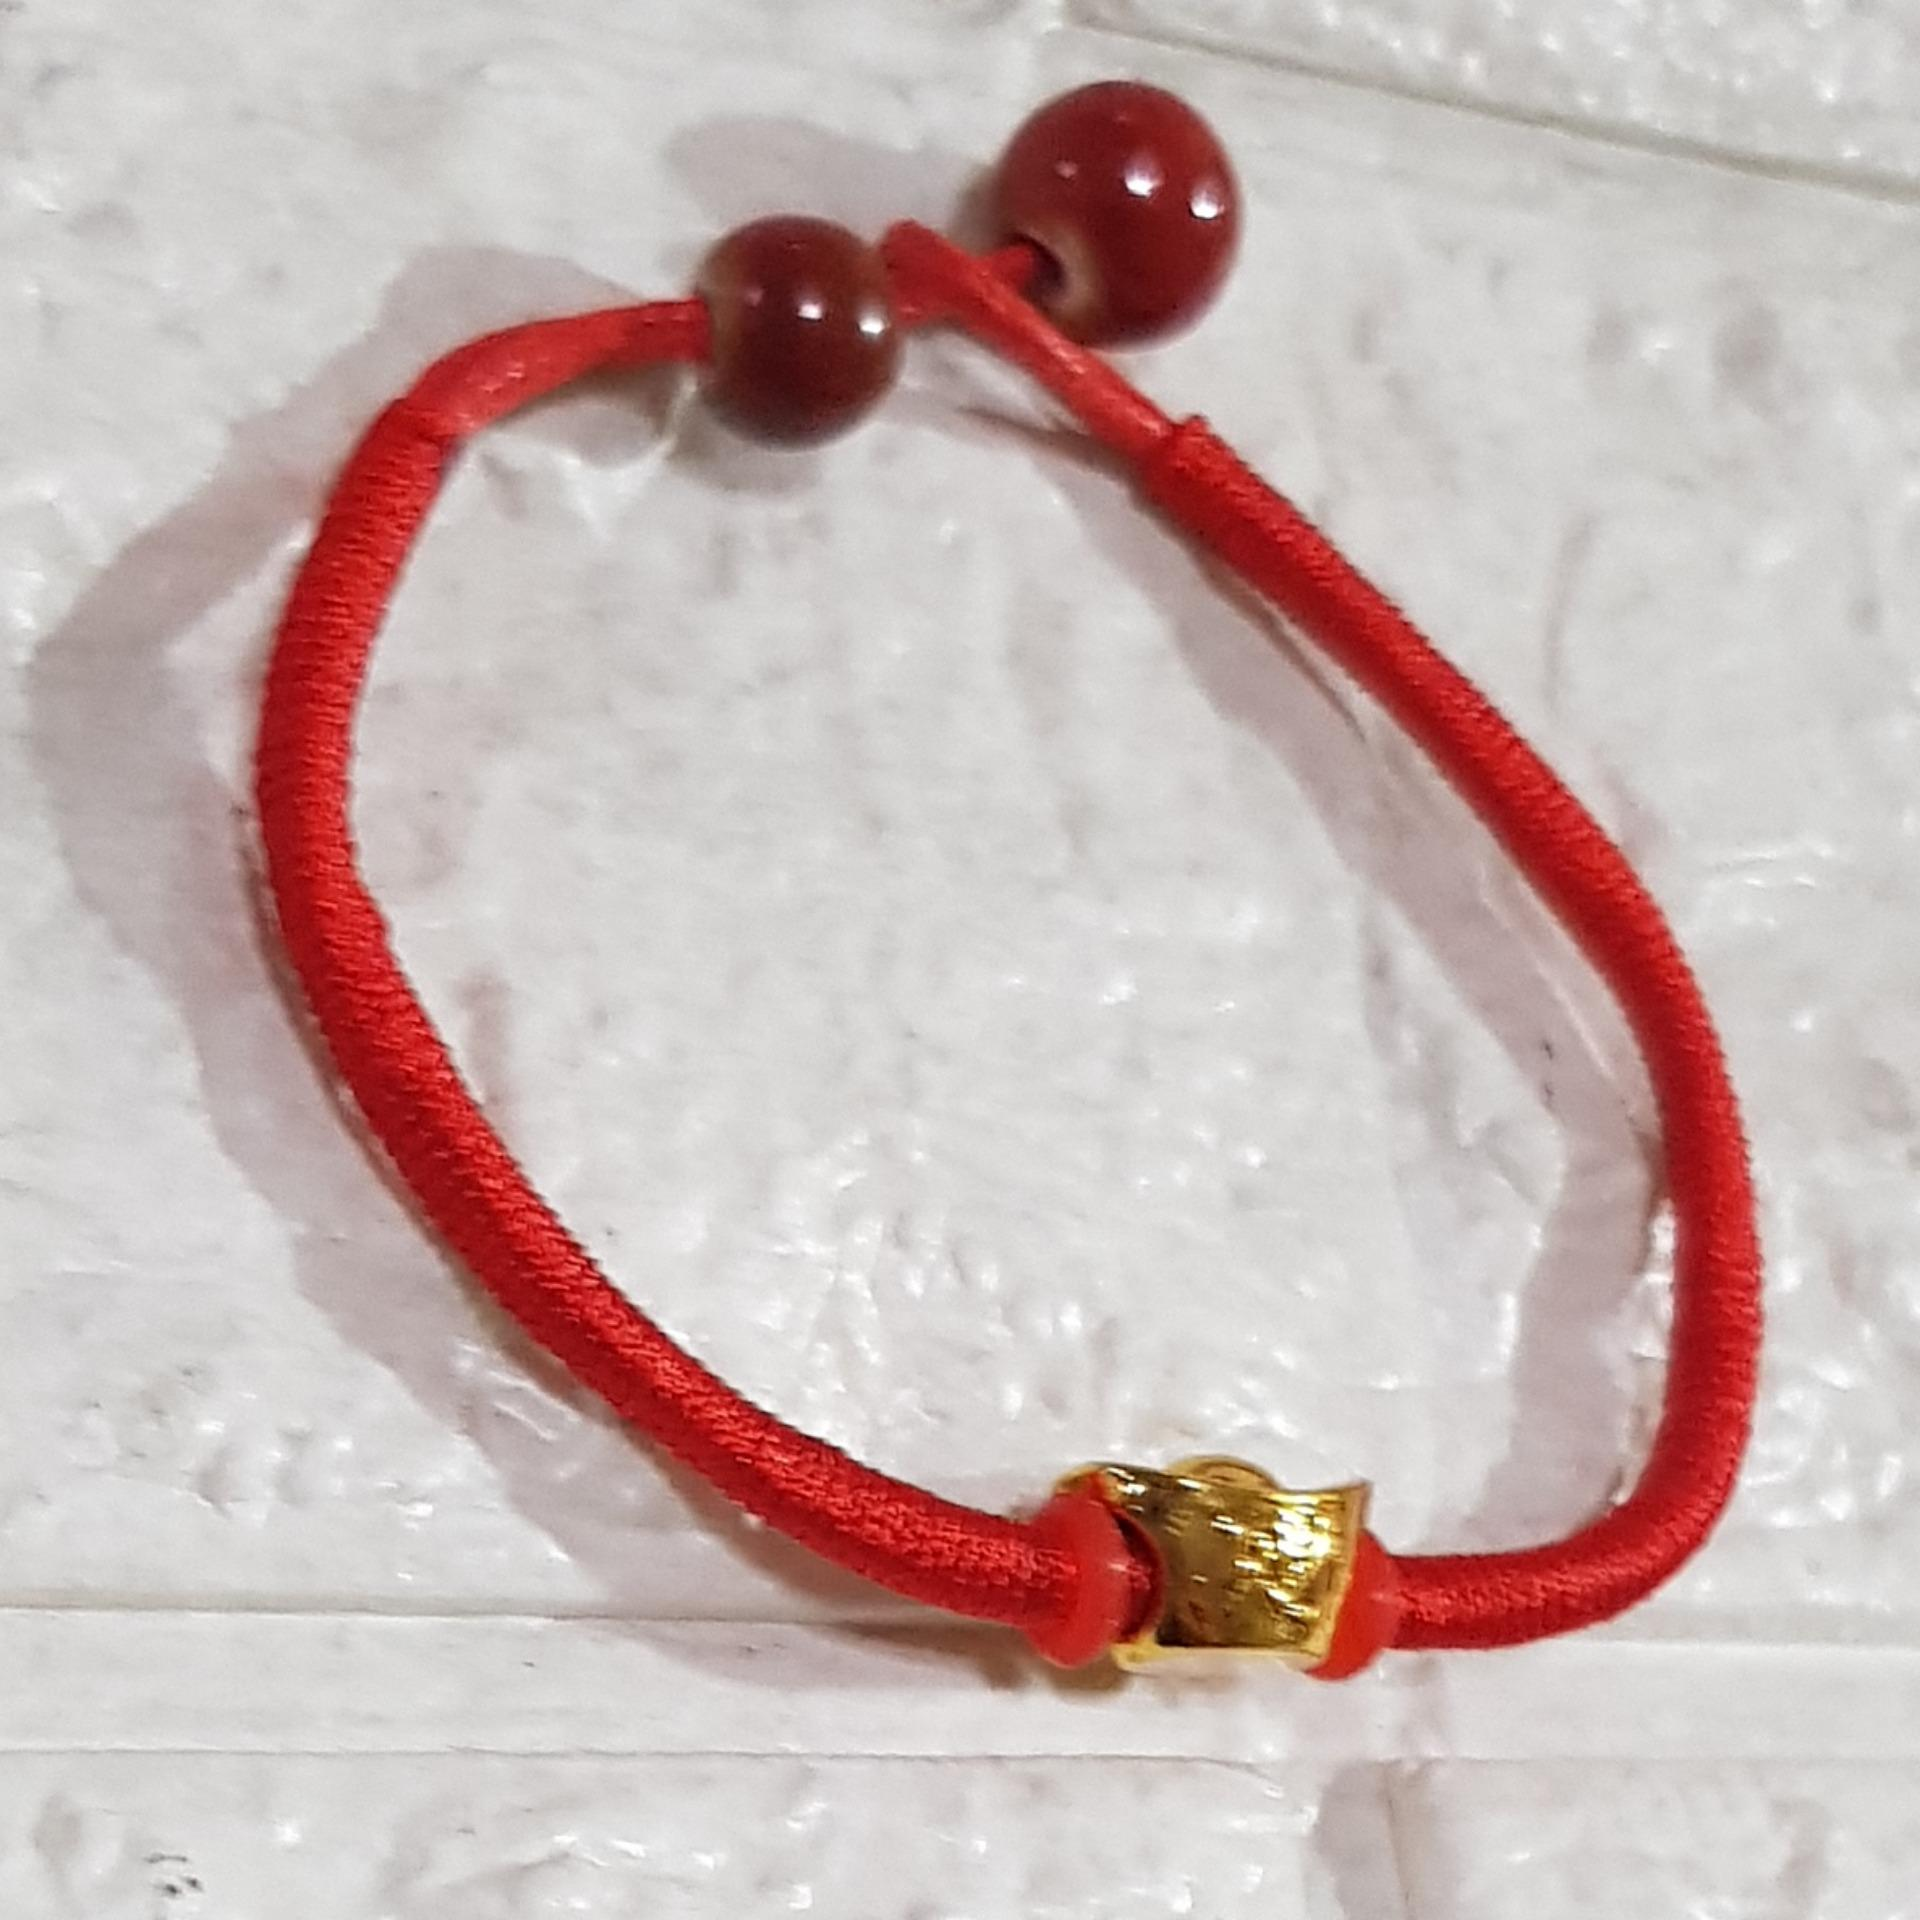 79b7eca26a54b7 Product details of 2019 Lucky Charm Red string Bracelet with money bar  Prosperity and Abundance with jewelry case